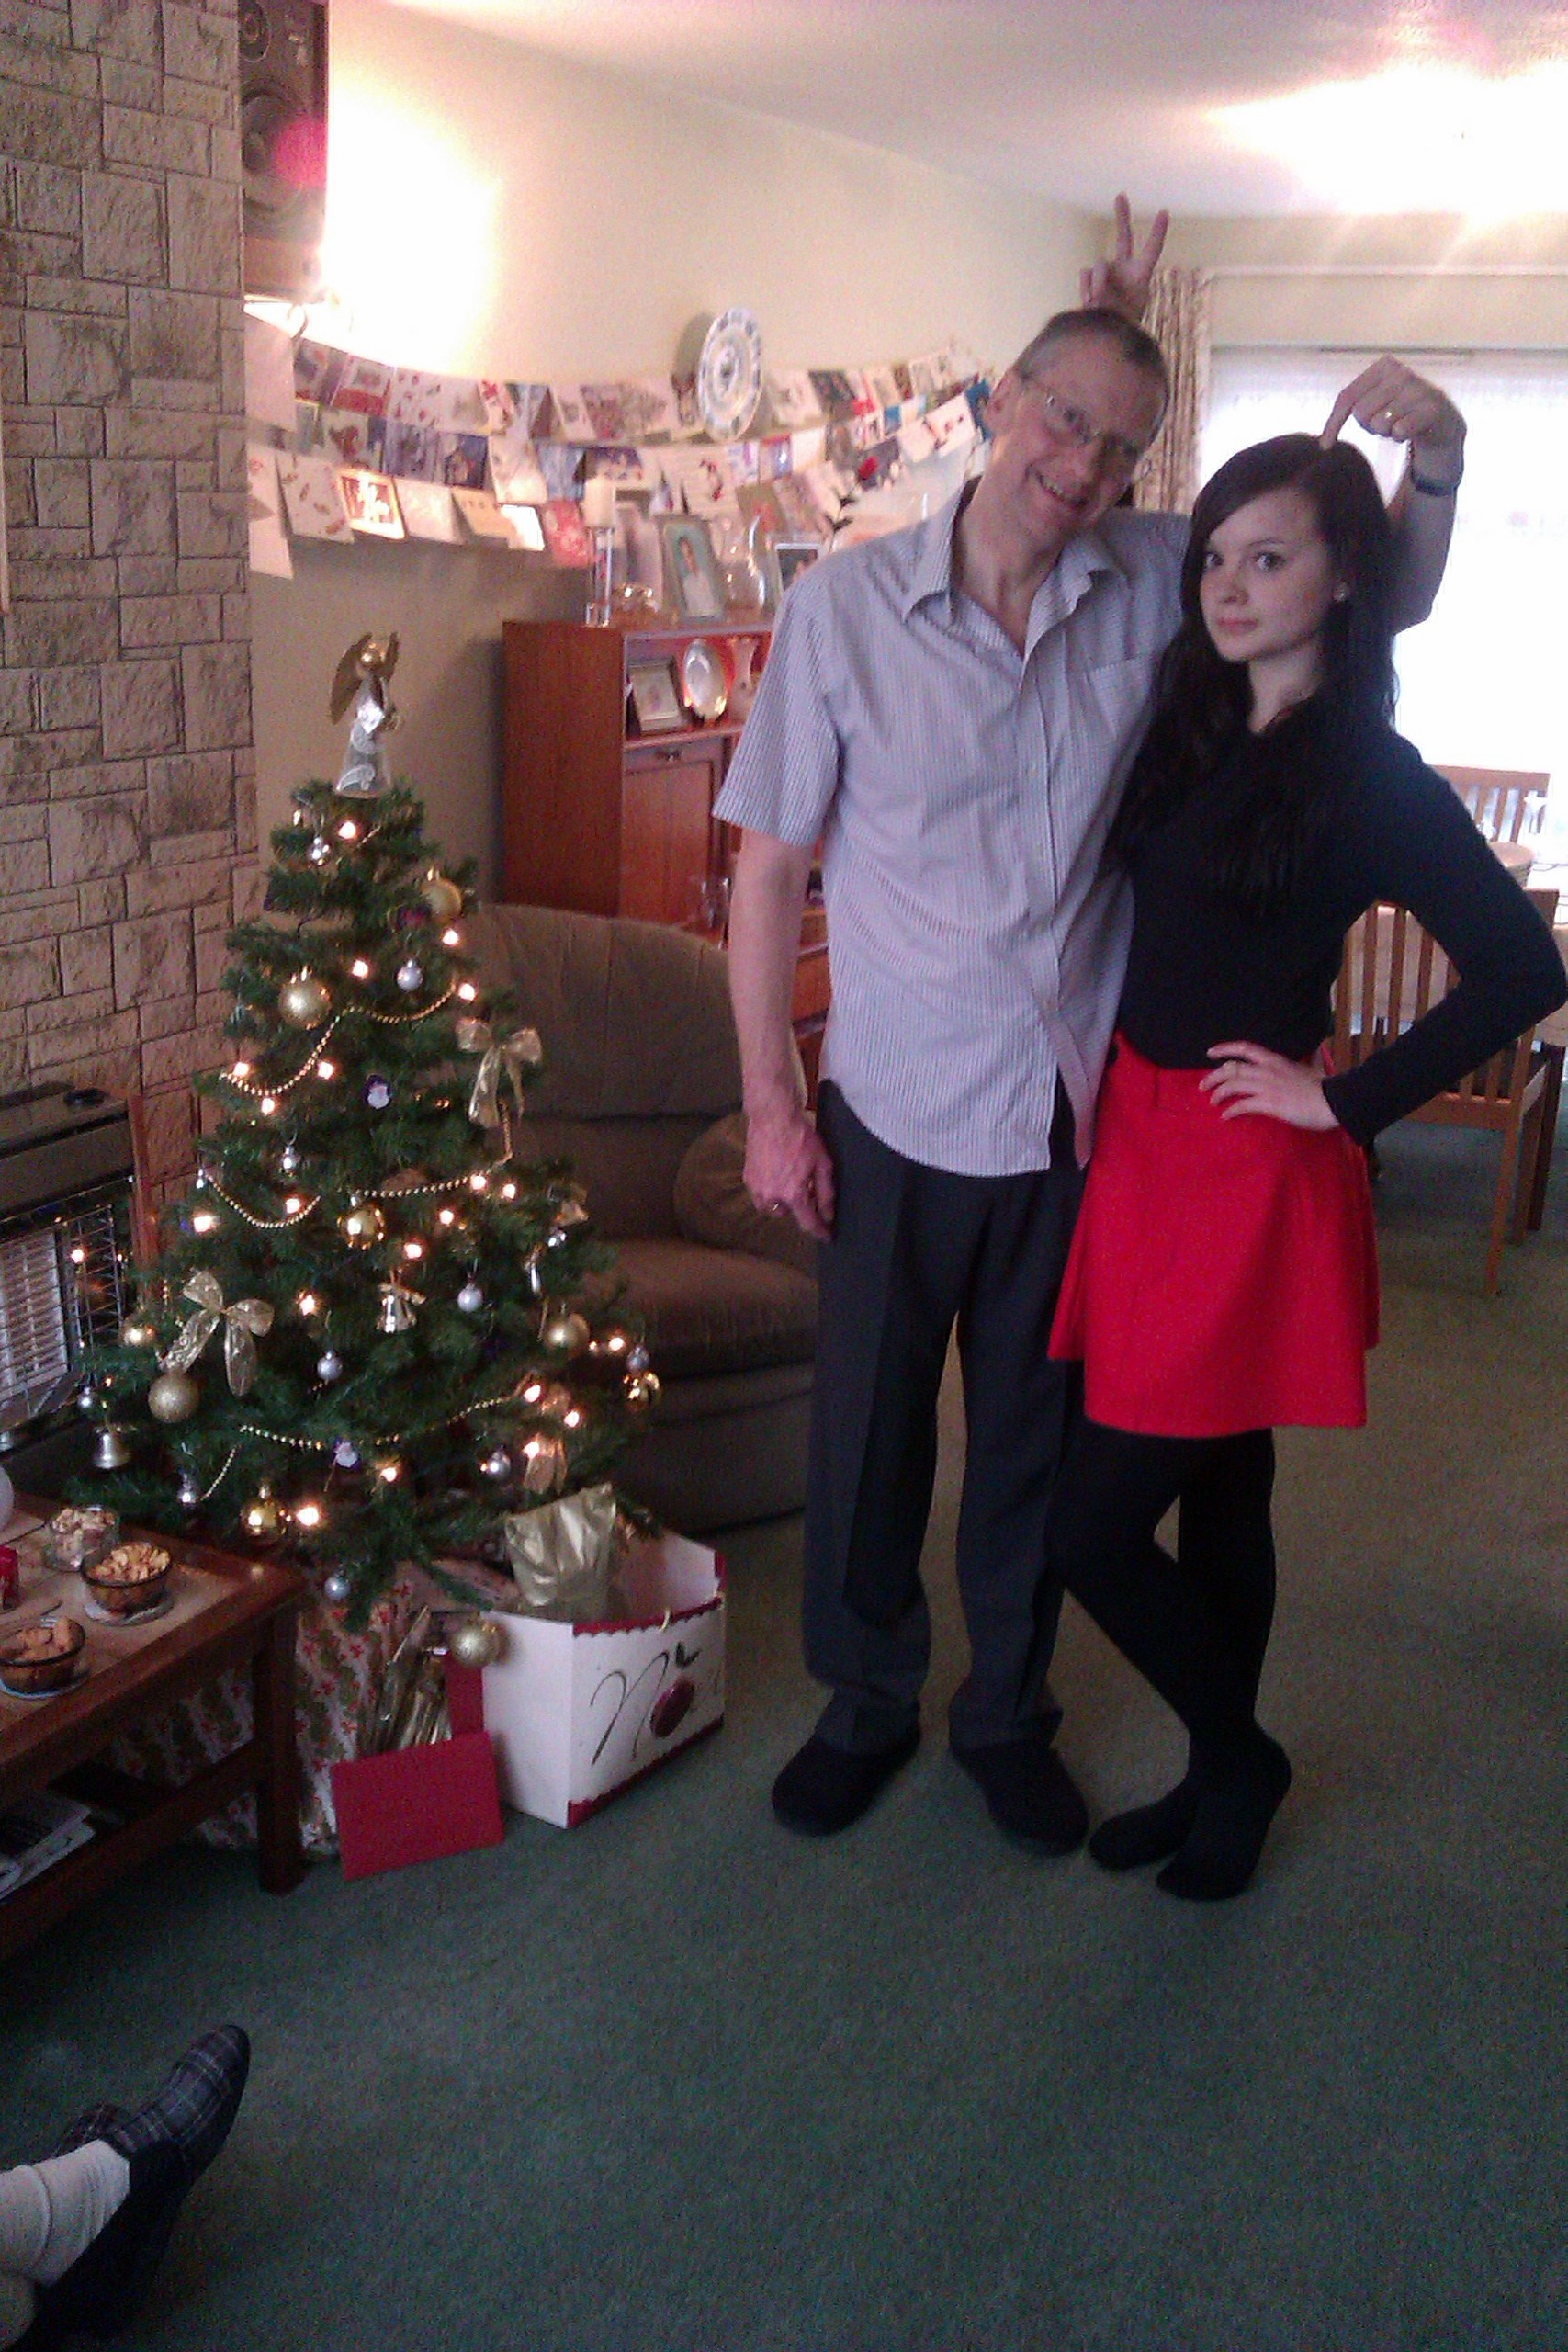 Me and My Dad - Christmas jour 2011!